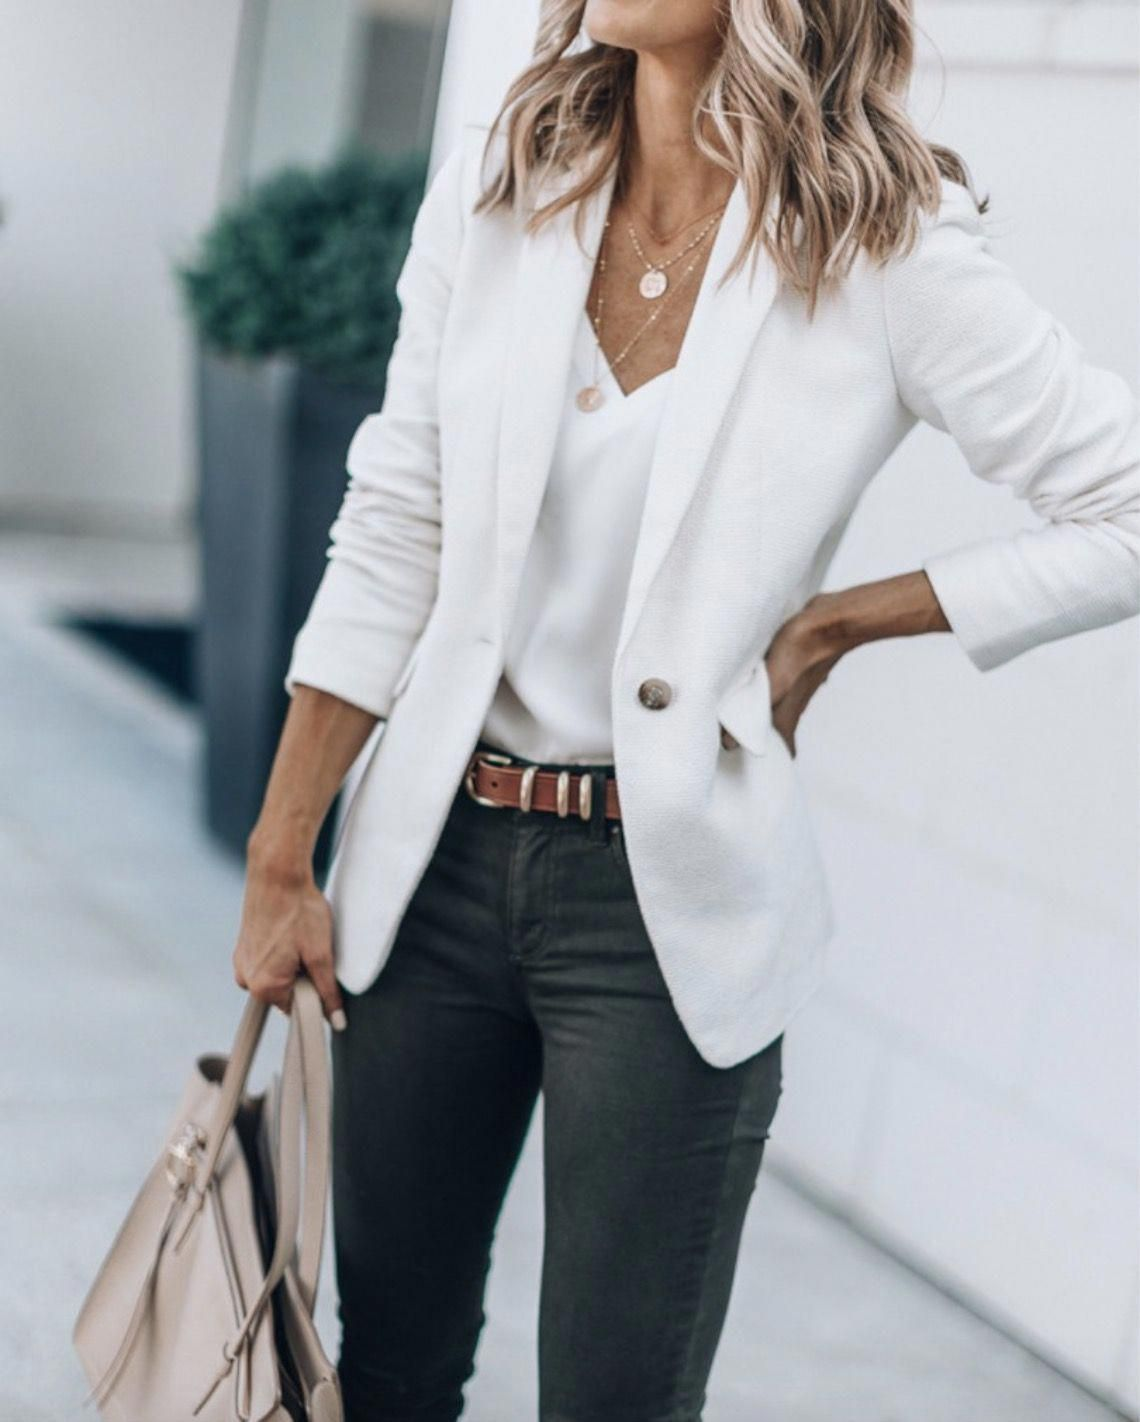 40 Outstanding Casual Outfits You Need To See | The Chic Pursuit